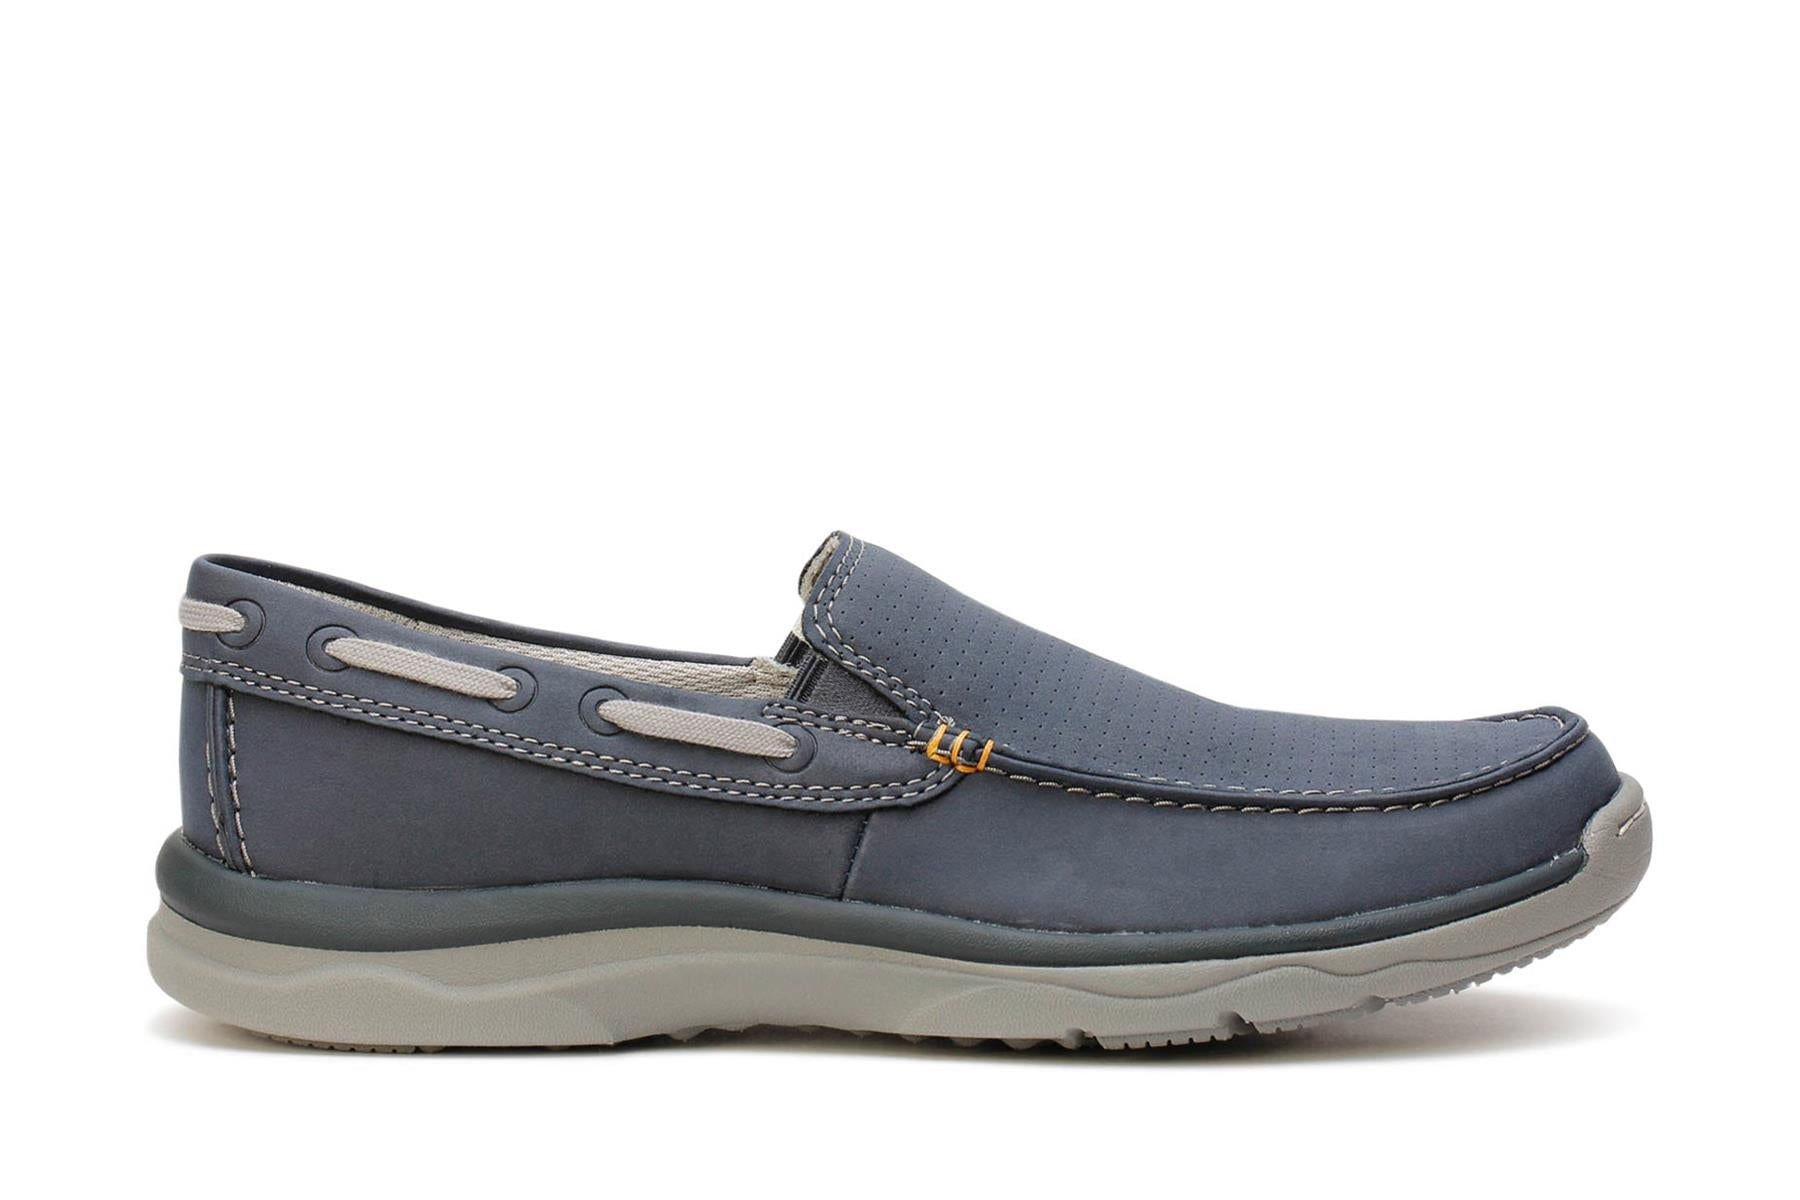 Cloudsteppers Marus Sail Clarks Boat Shoes